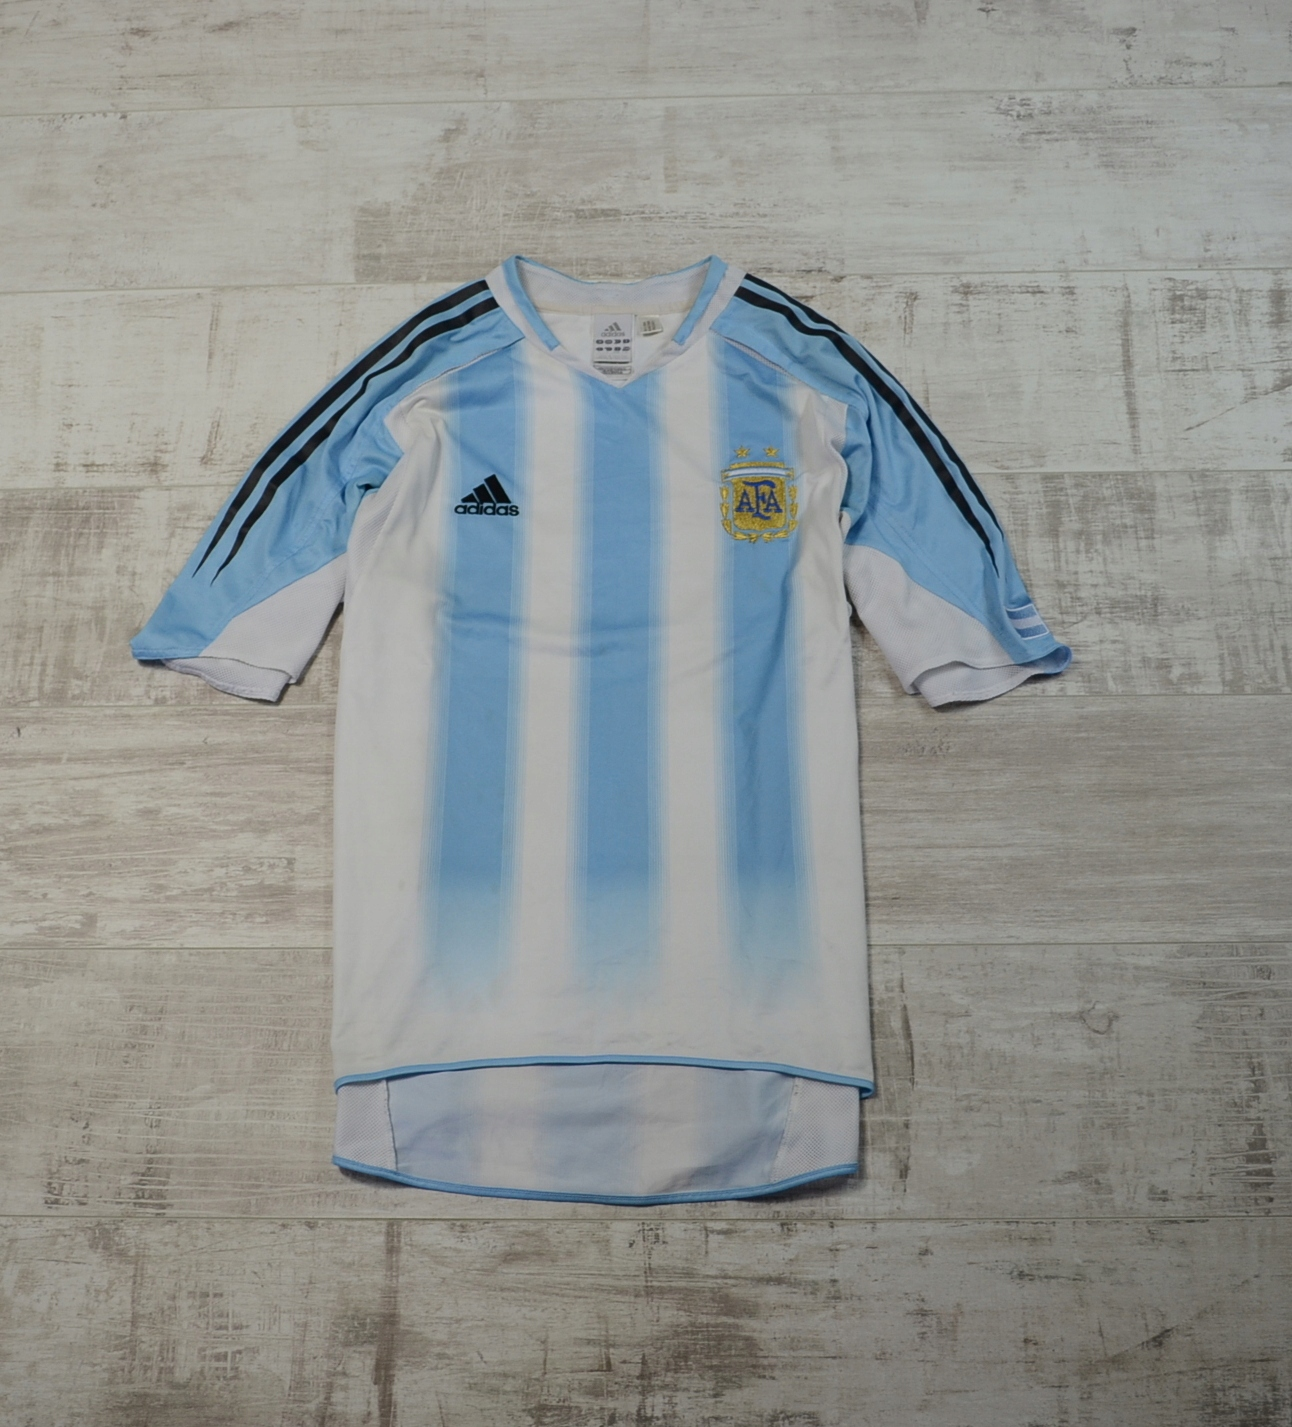 ADIDAS ARGENTYNA 2004 FOOTBALL JERSEY L